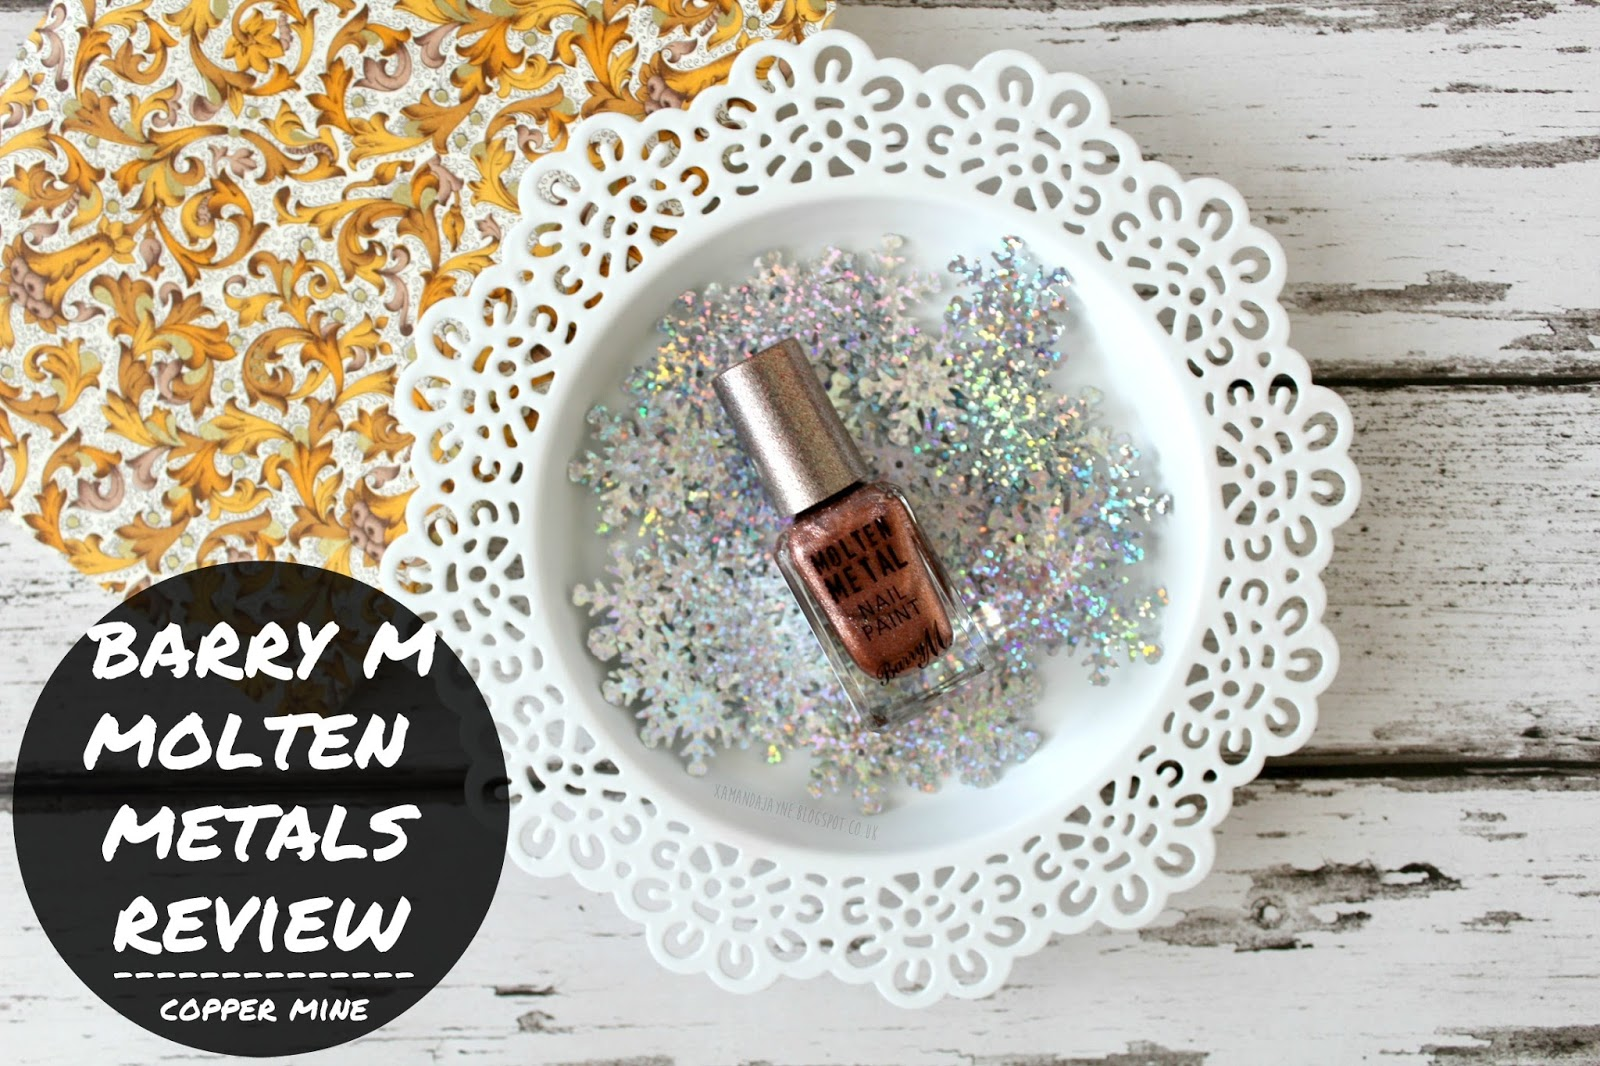 barry m cruelty free molten metals nail varnish review swatches copper mine